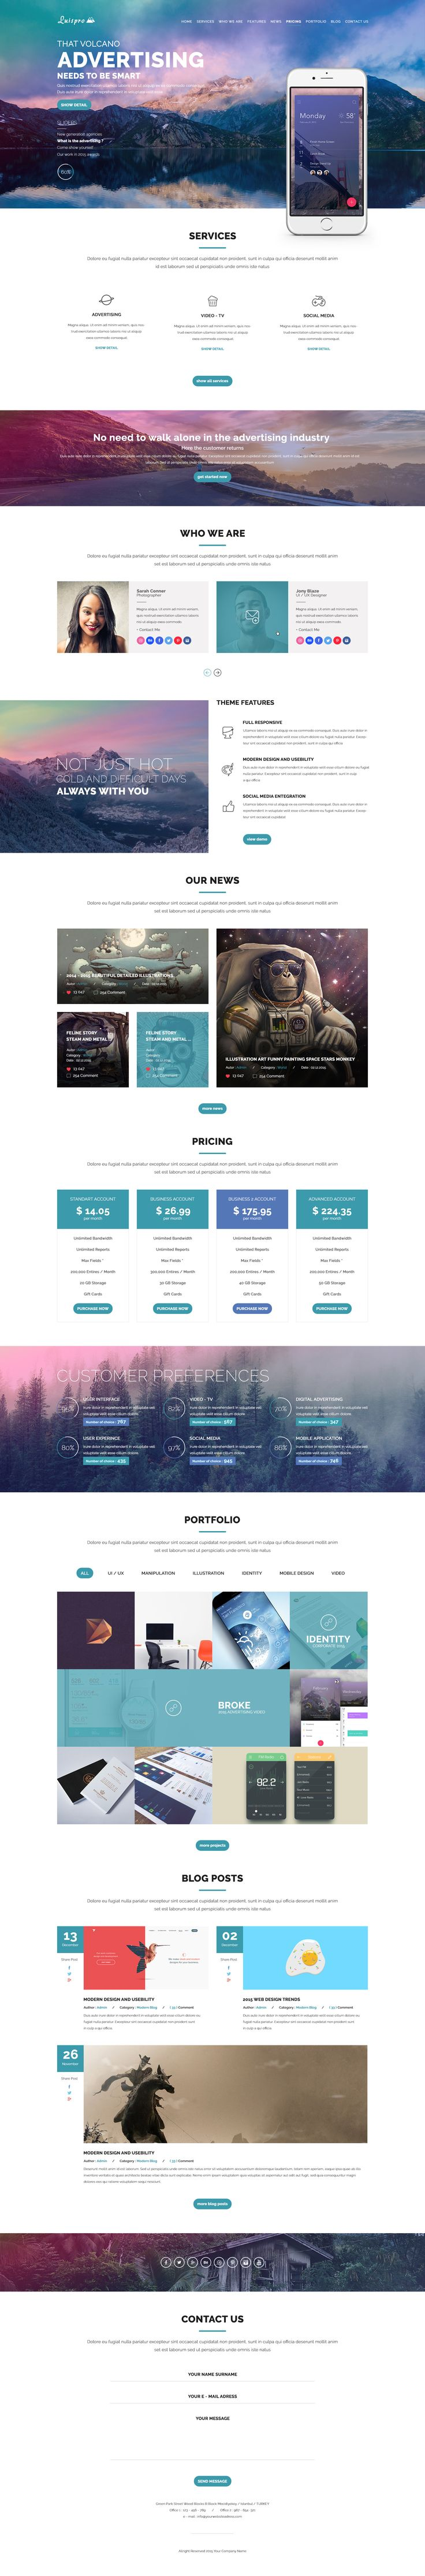 Luispro - Flat & User Friendly Landing Page Design